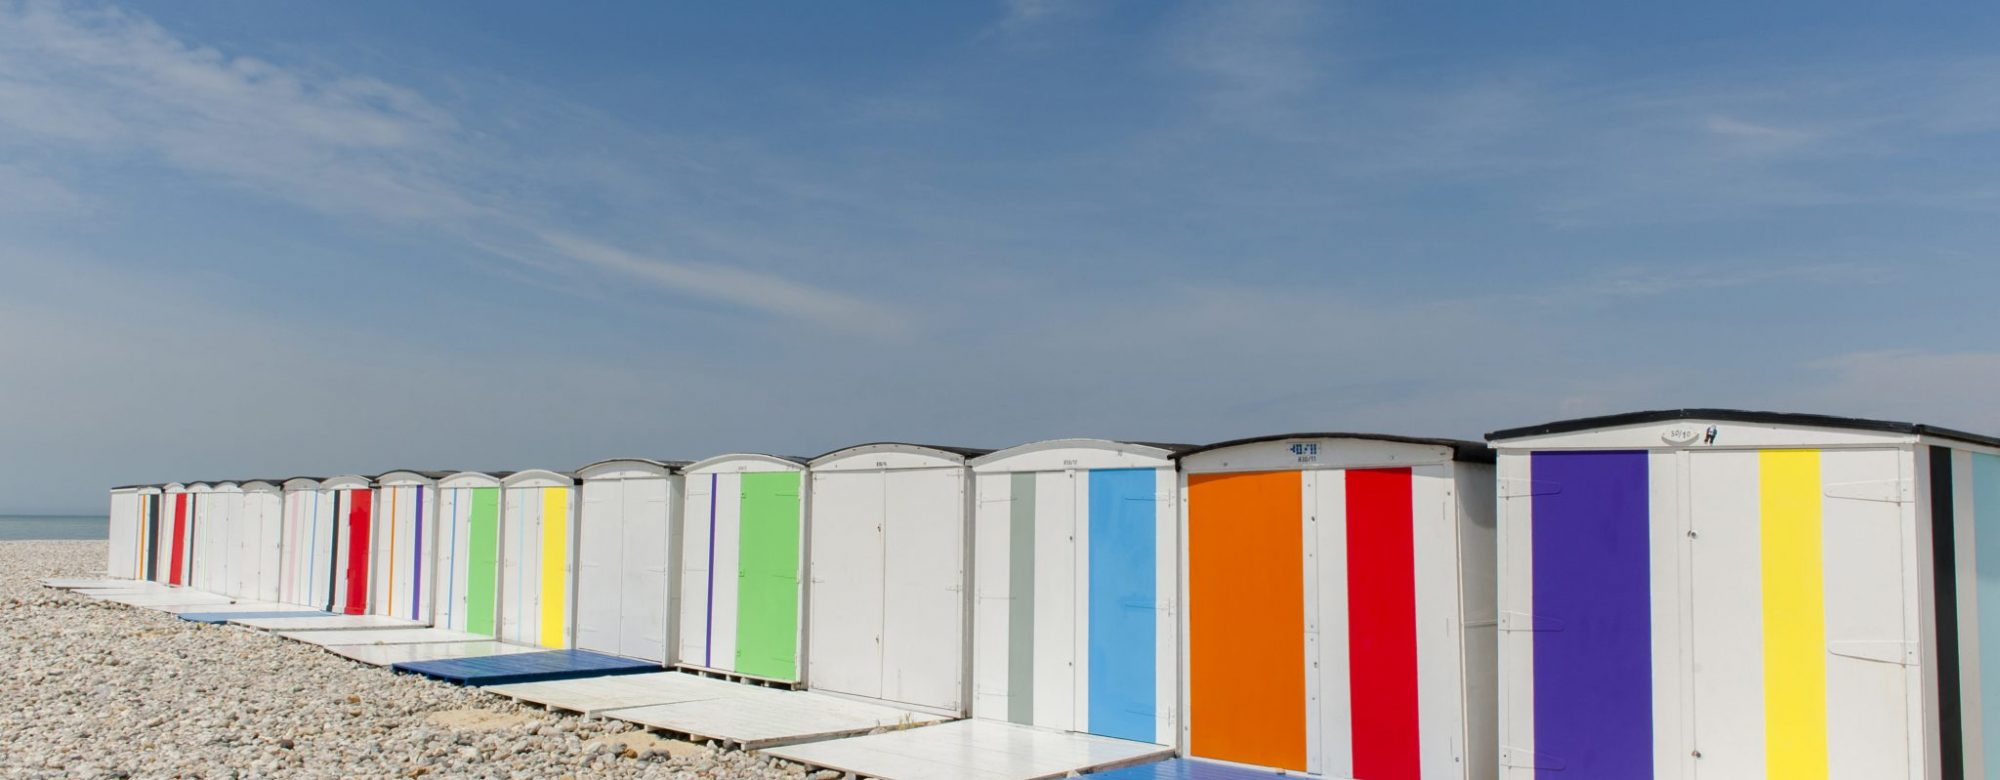 Colors on the beach par Karel Martens pour Un été au Havre